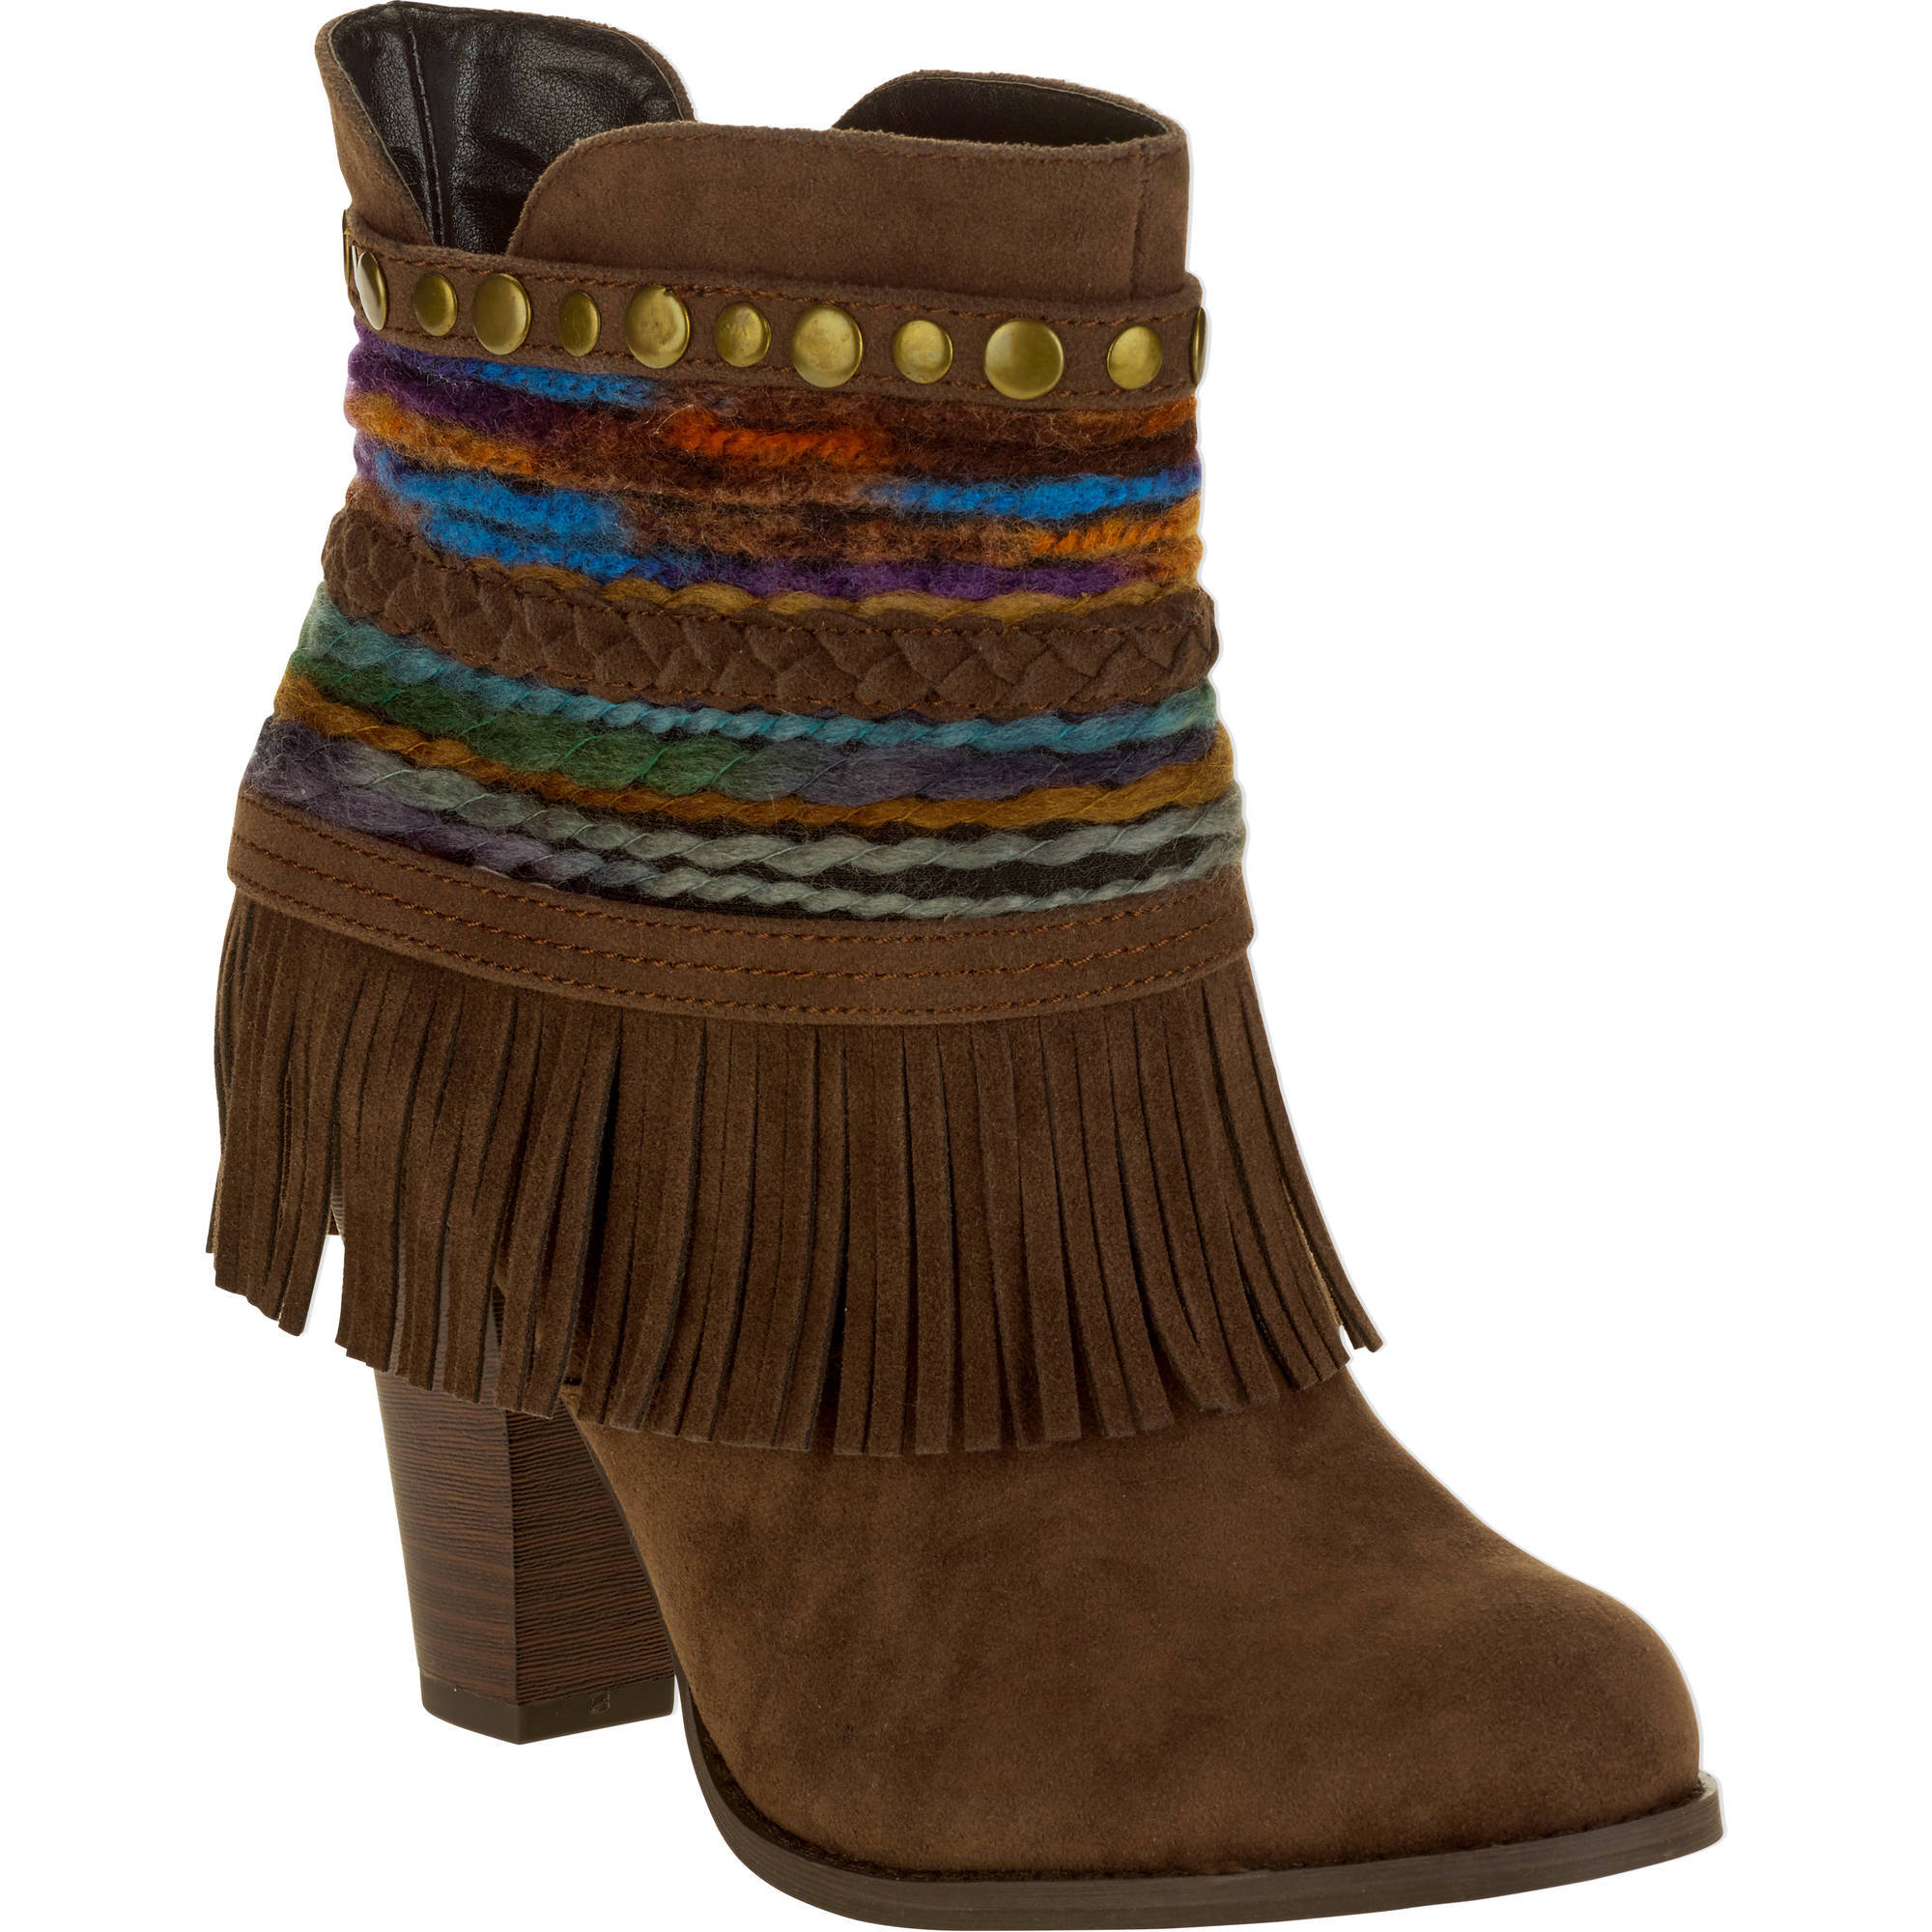 MOMO Women's Heeled Ankle Boot with Fringe and Braid Decor